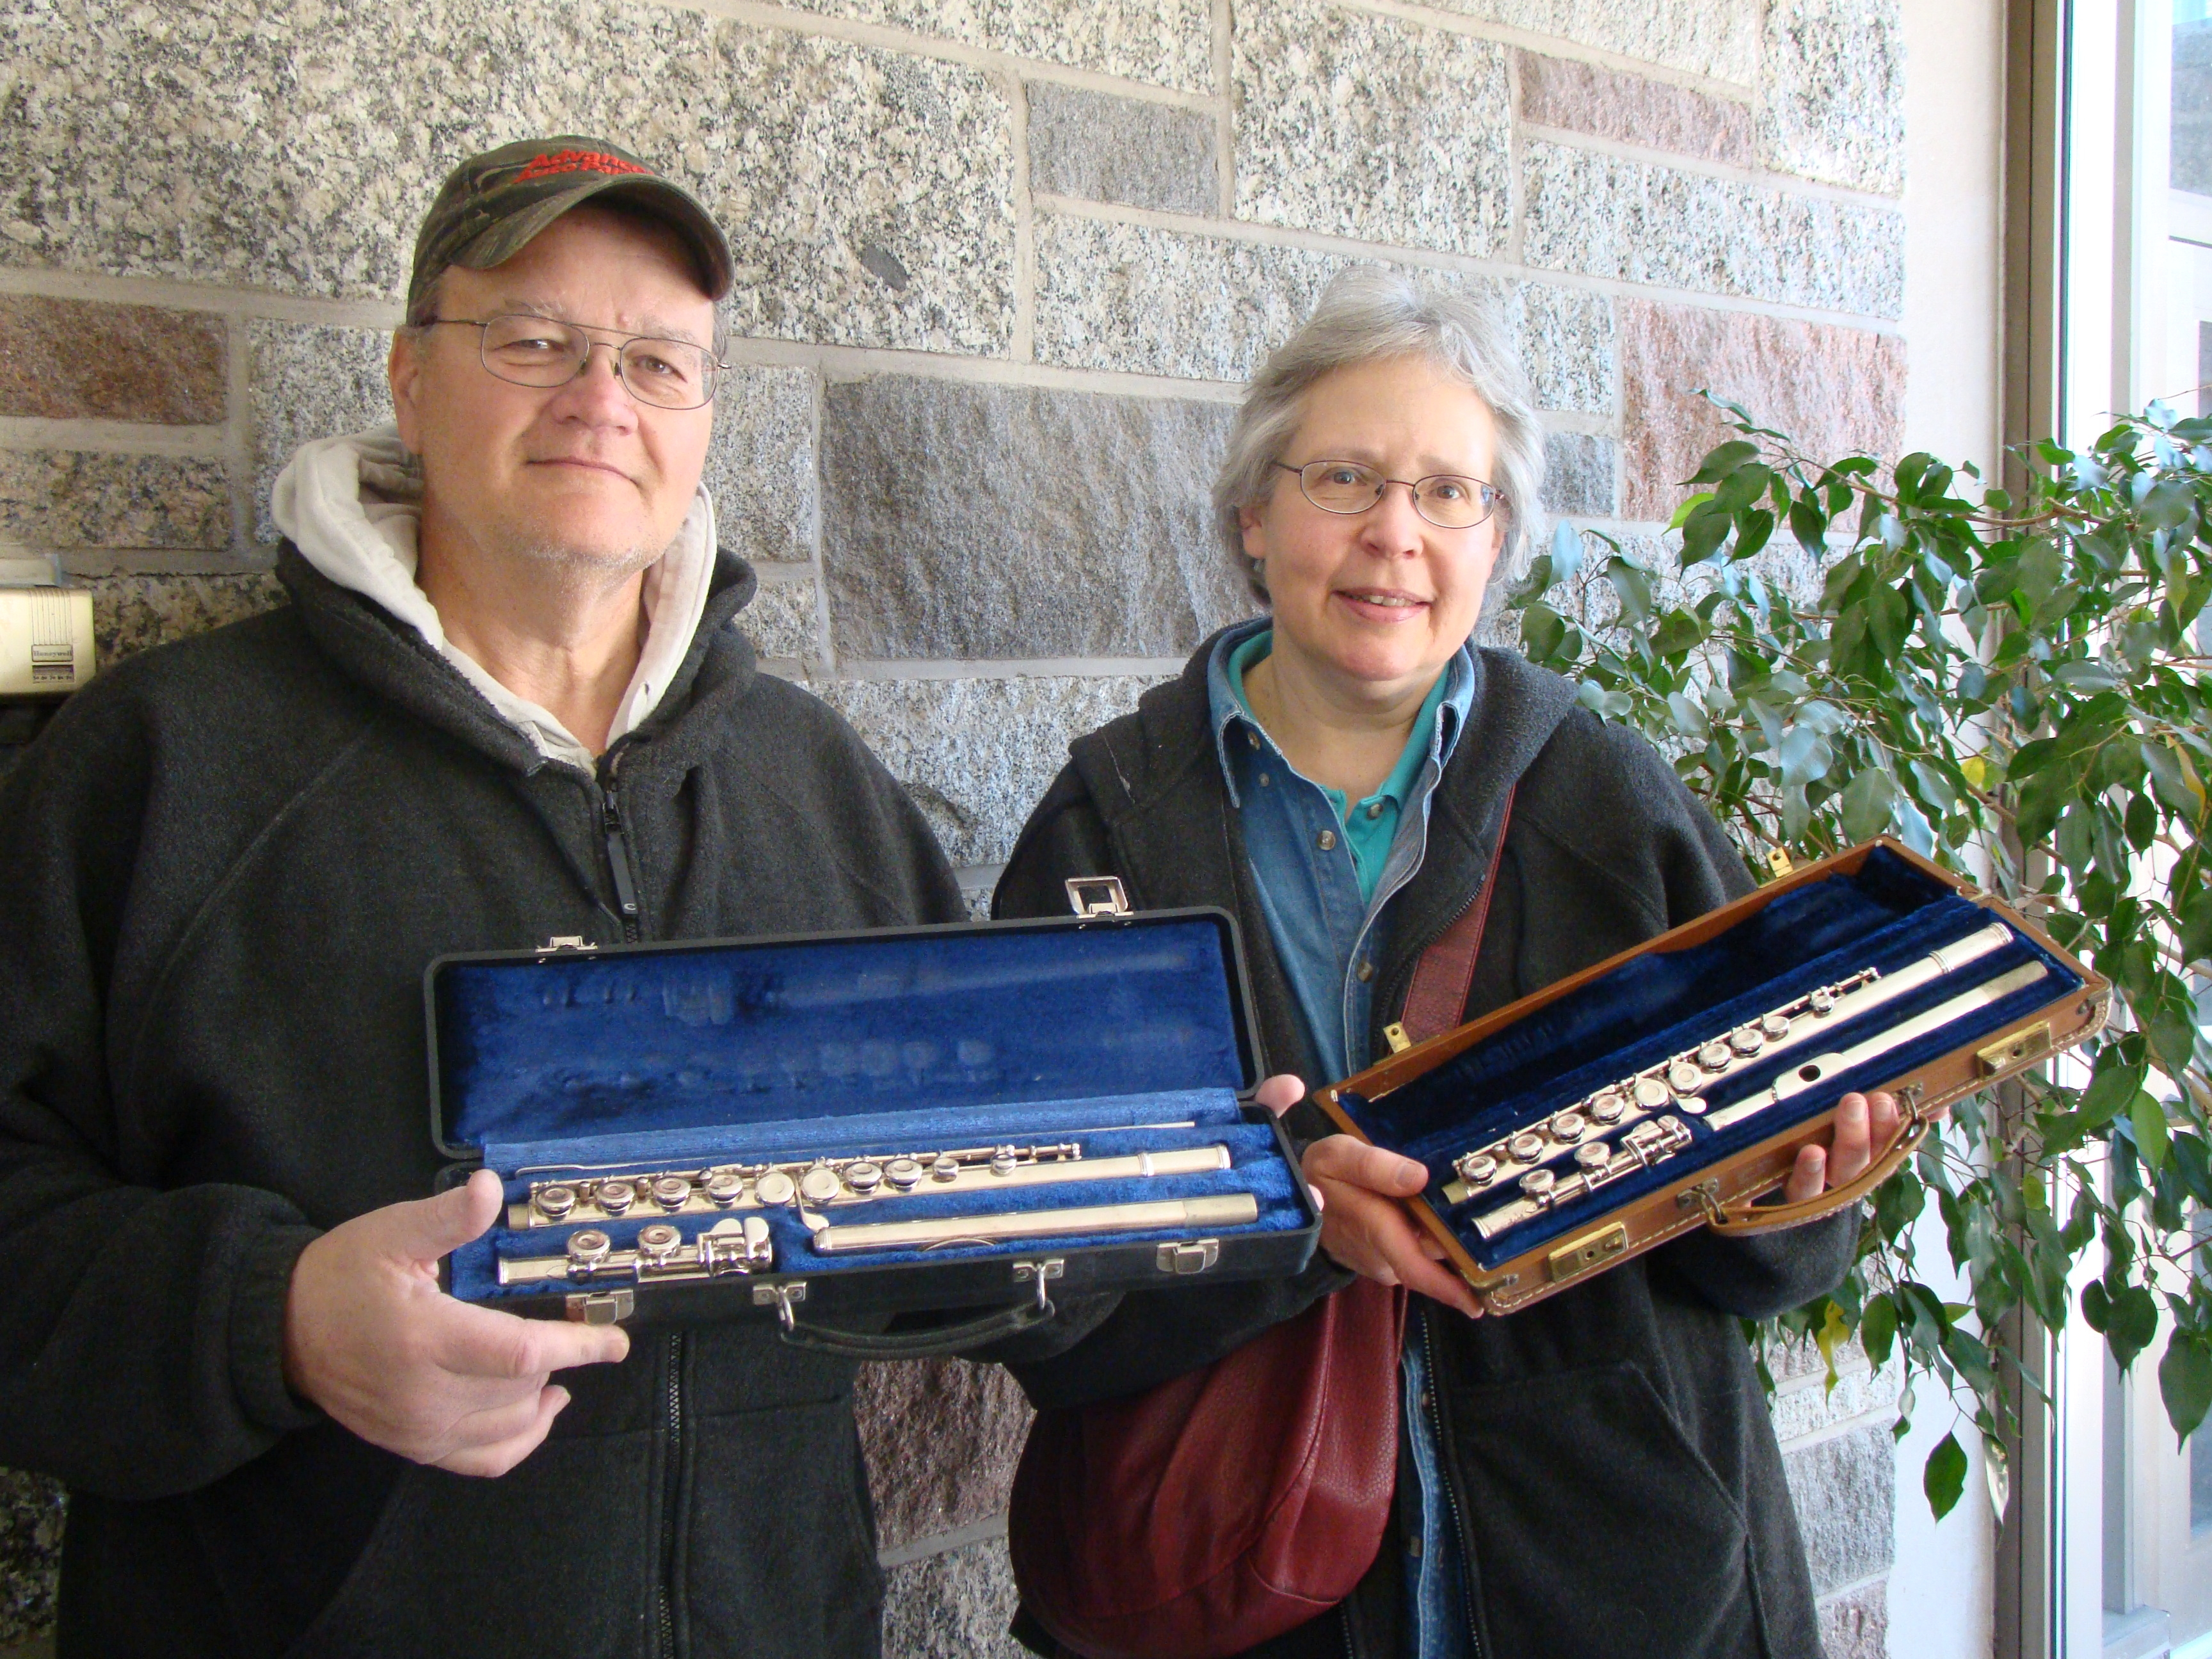 Proud donators to the instrument drive.